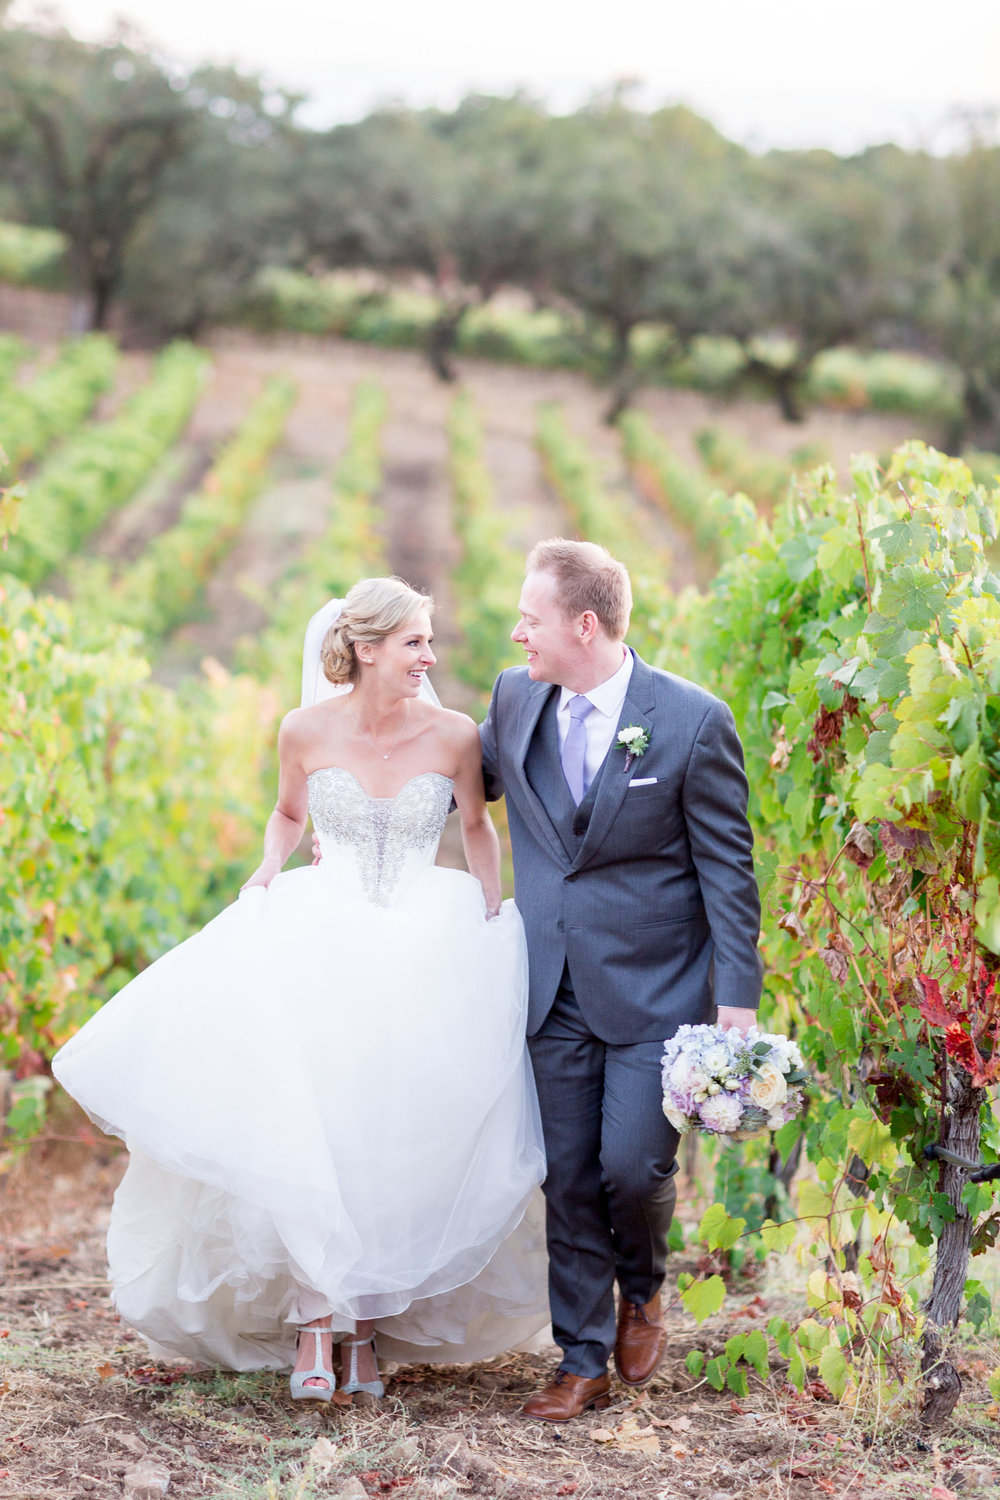 Paradise-Ridge-Winery-Santa-Rosa-Wedding-Photographer-2-2-1707x2560.jpg